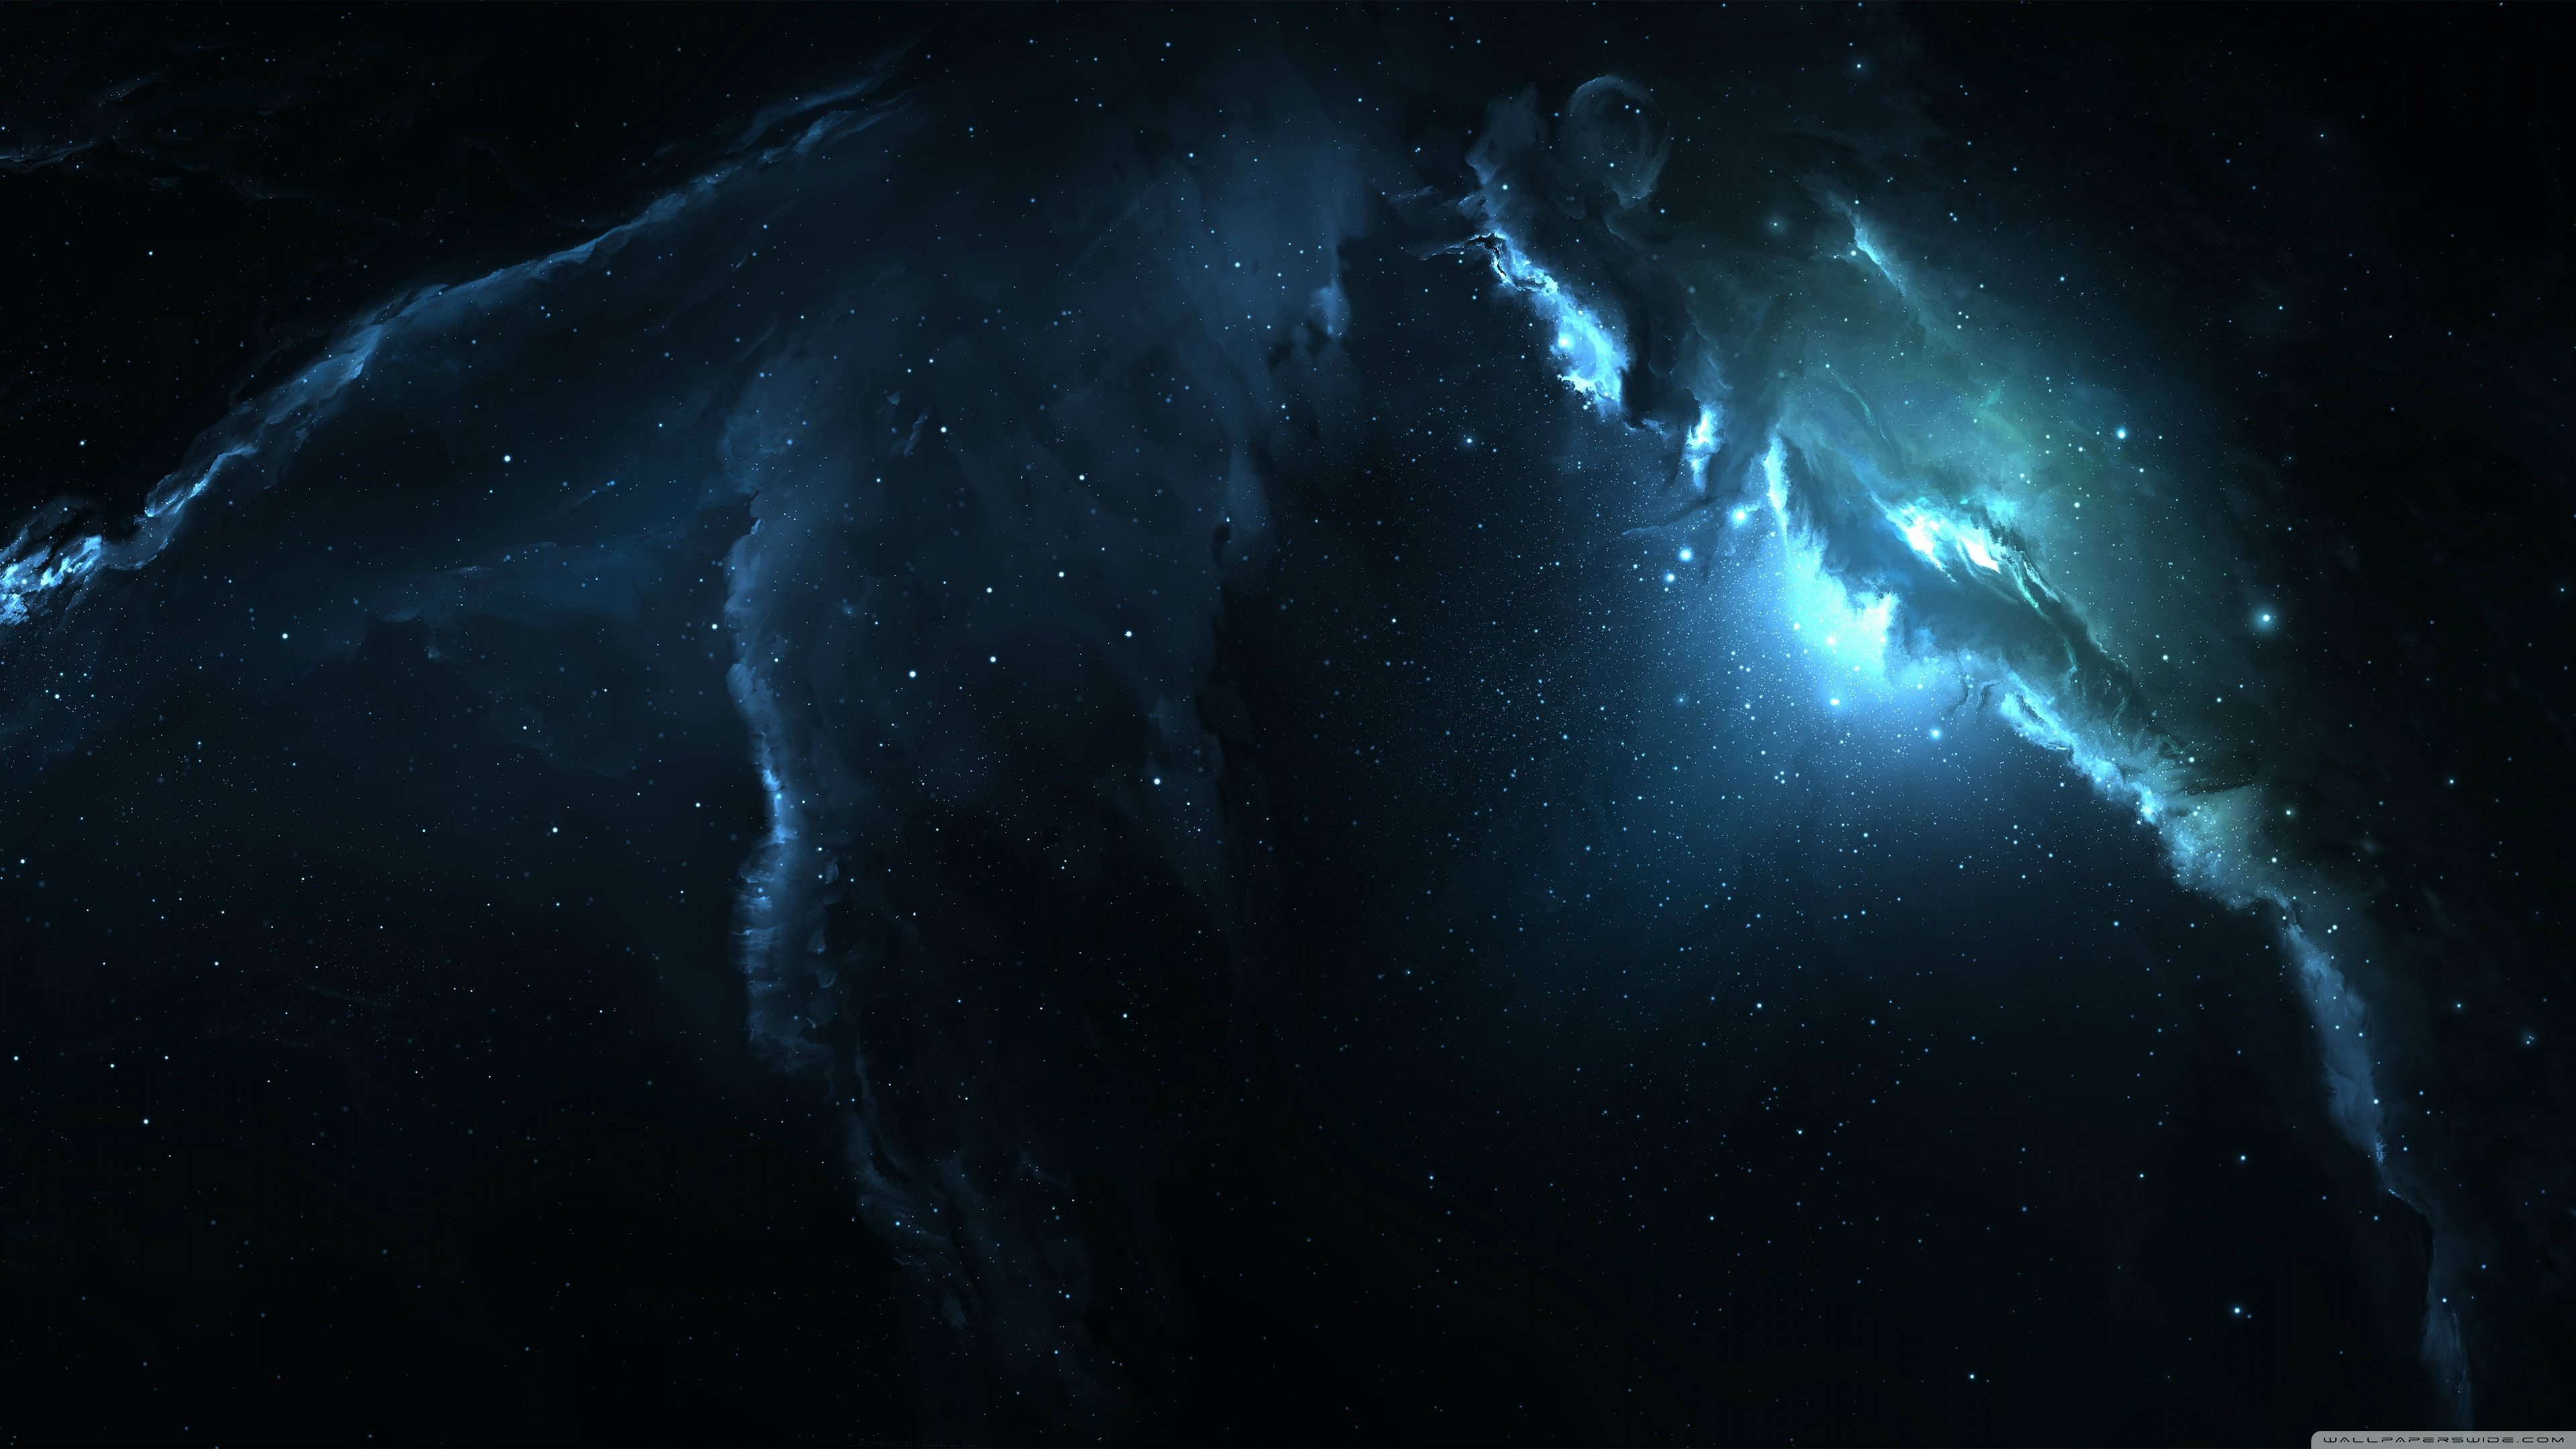 Space 4K Wallpaper 49 images 3840x2160